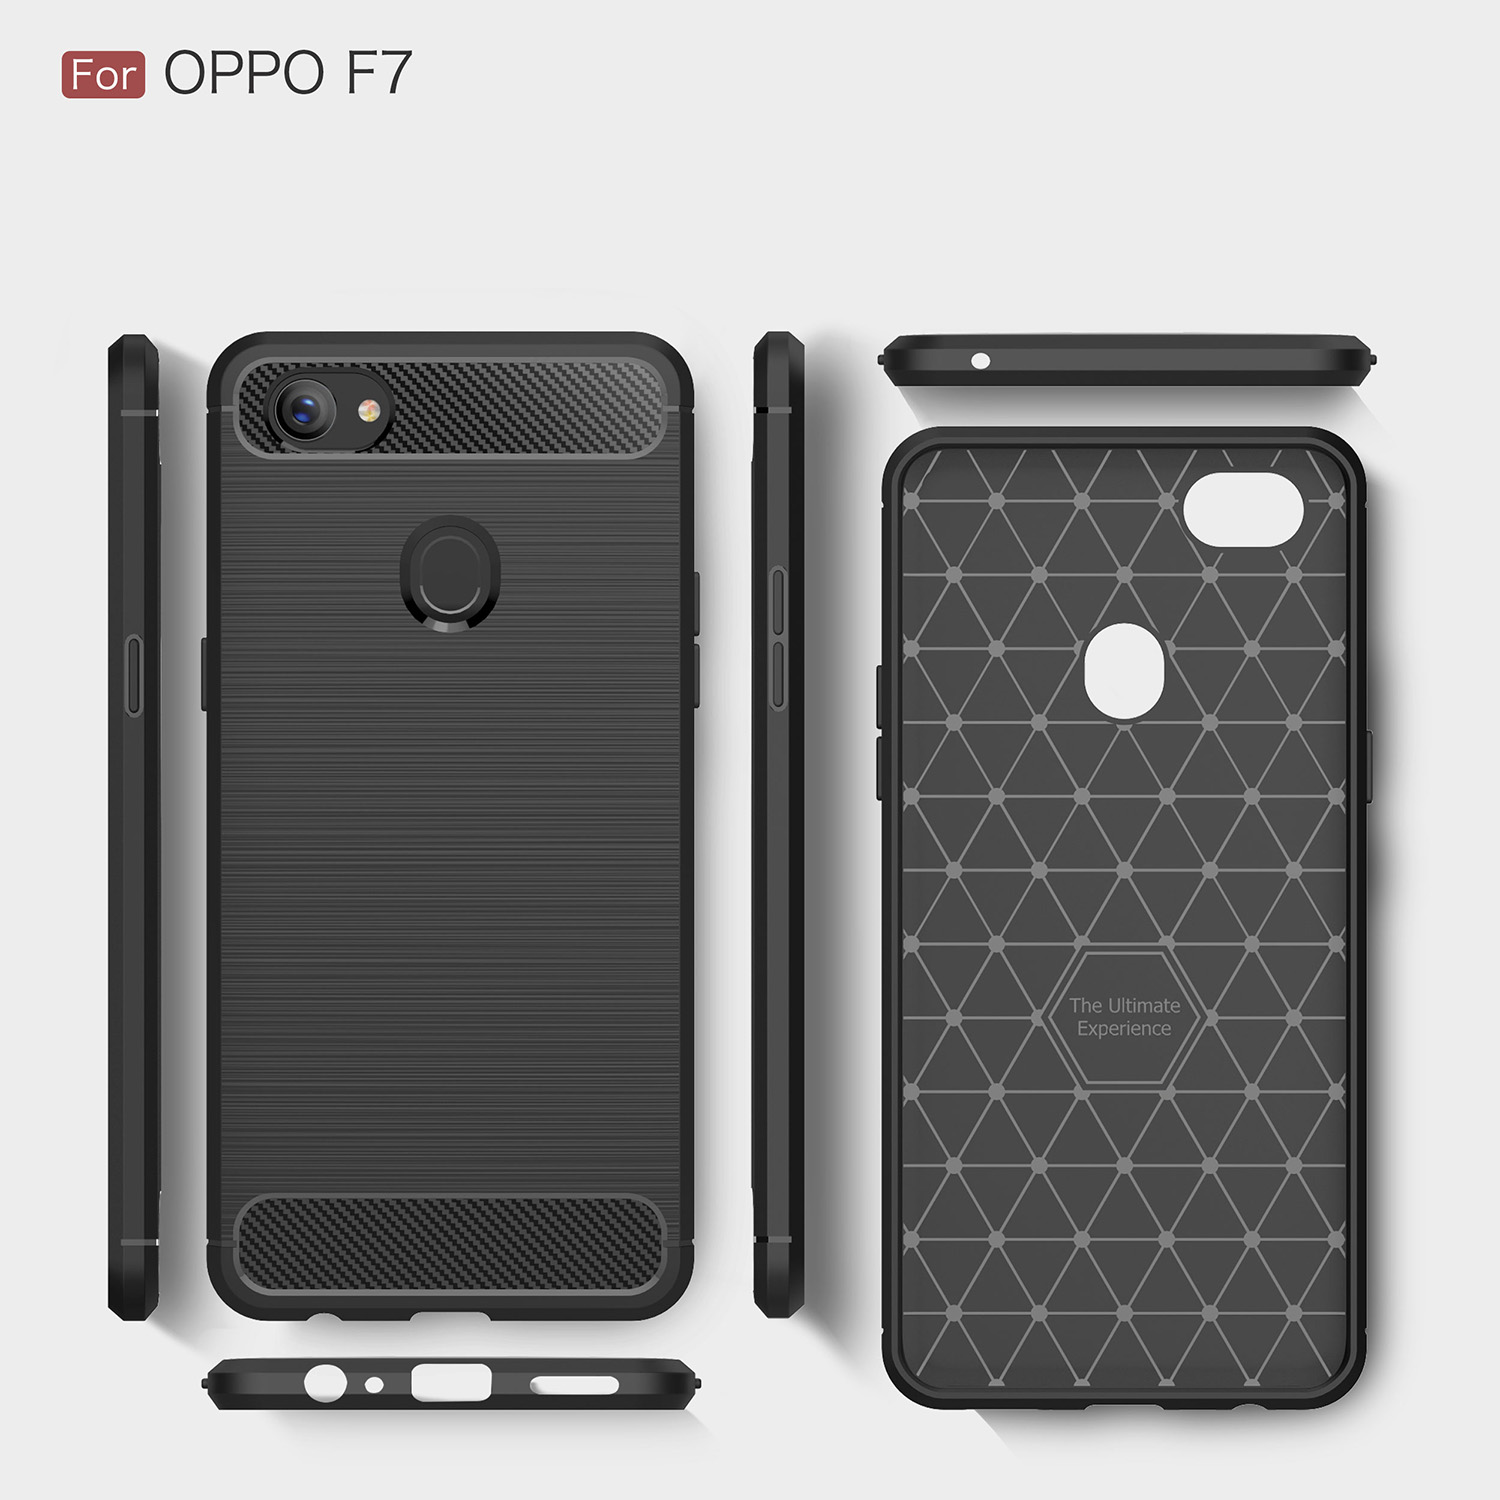 Case For Oppo F7 CPH1819 CPH1821 CPH 1819 1821 Dual SIM Silicon TPU Thin Back Cover For Oppo F 7 2018 Pure Color Phone Housing